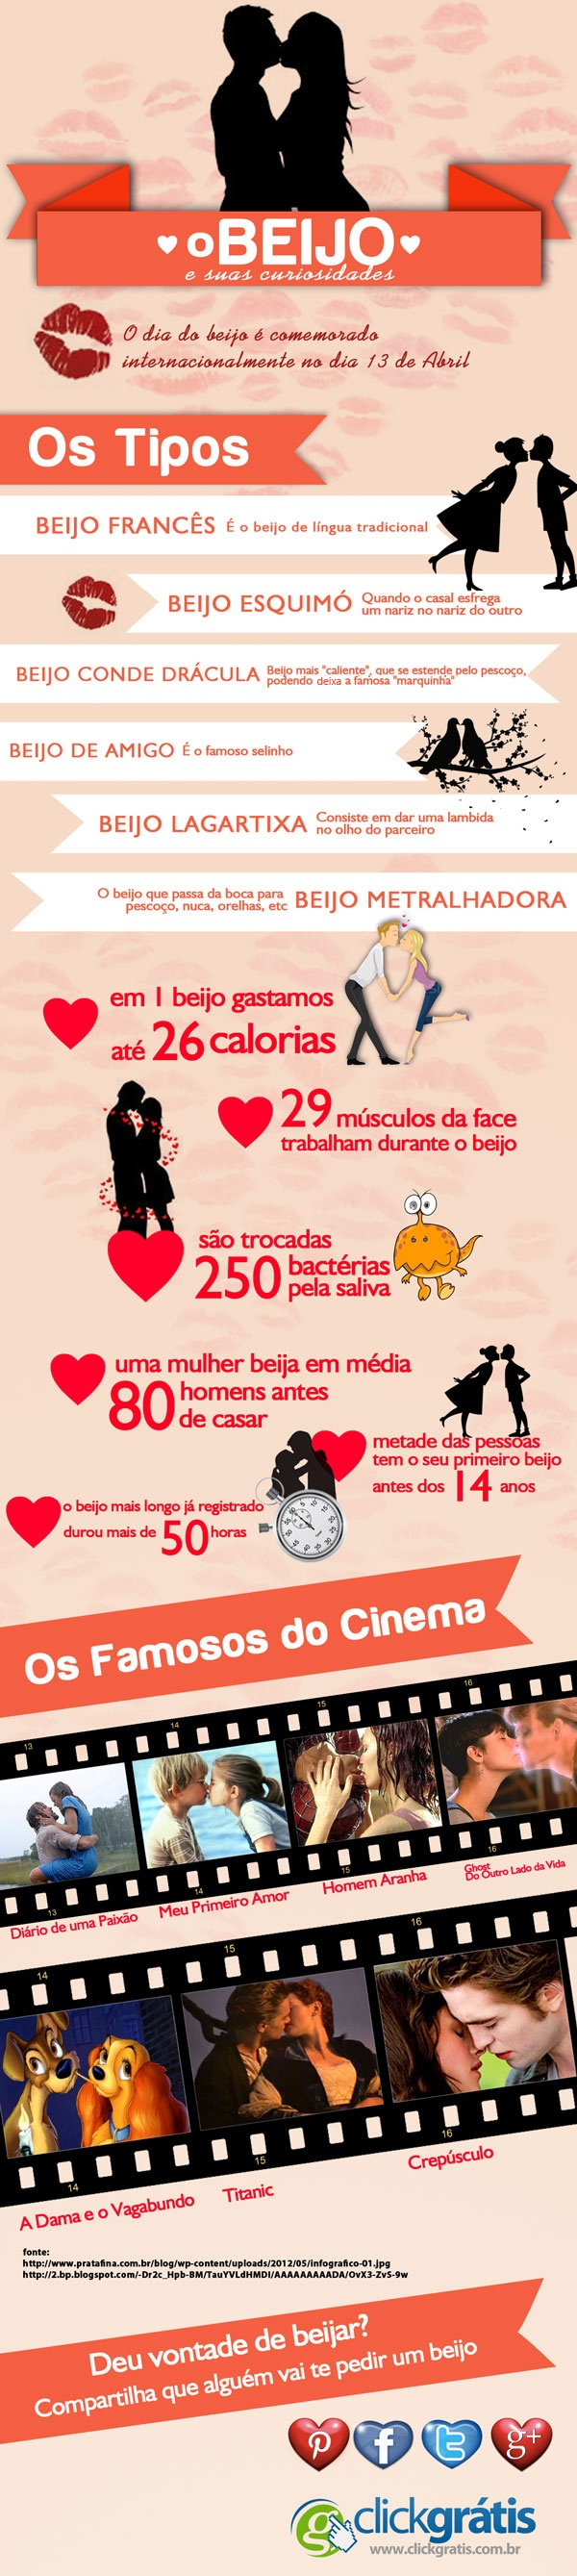 Dia do Beijo - 13 Abril - Infográficos